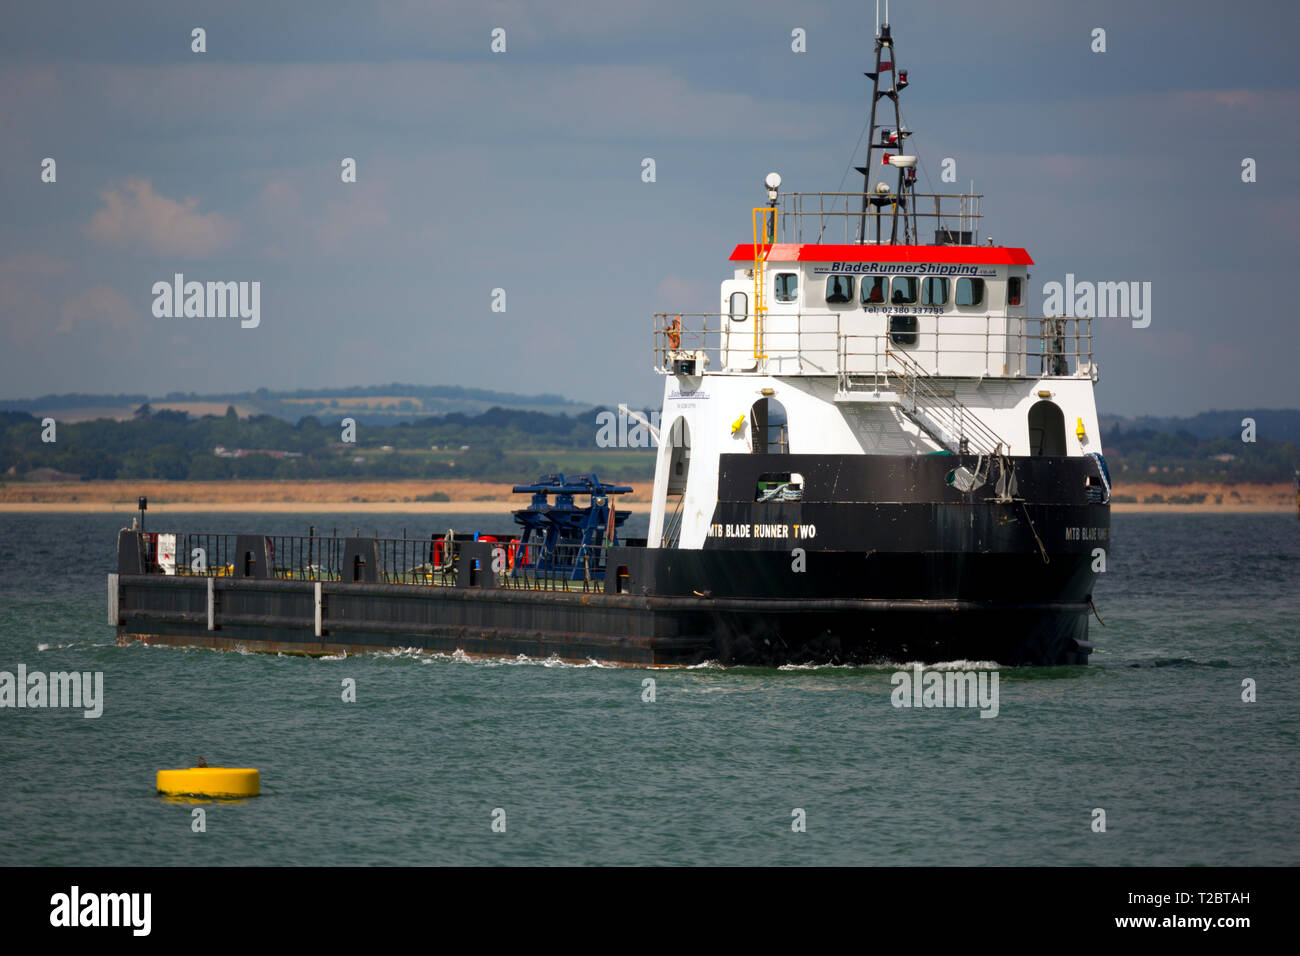 Ship, Blade,Runner,Two,designed,to,carry,large,wind,turbine,blades,from,factory,to,offshore,farms,The Solent,Southampton,Vestas,Cowes,Isle of Wight,En - Stock Image